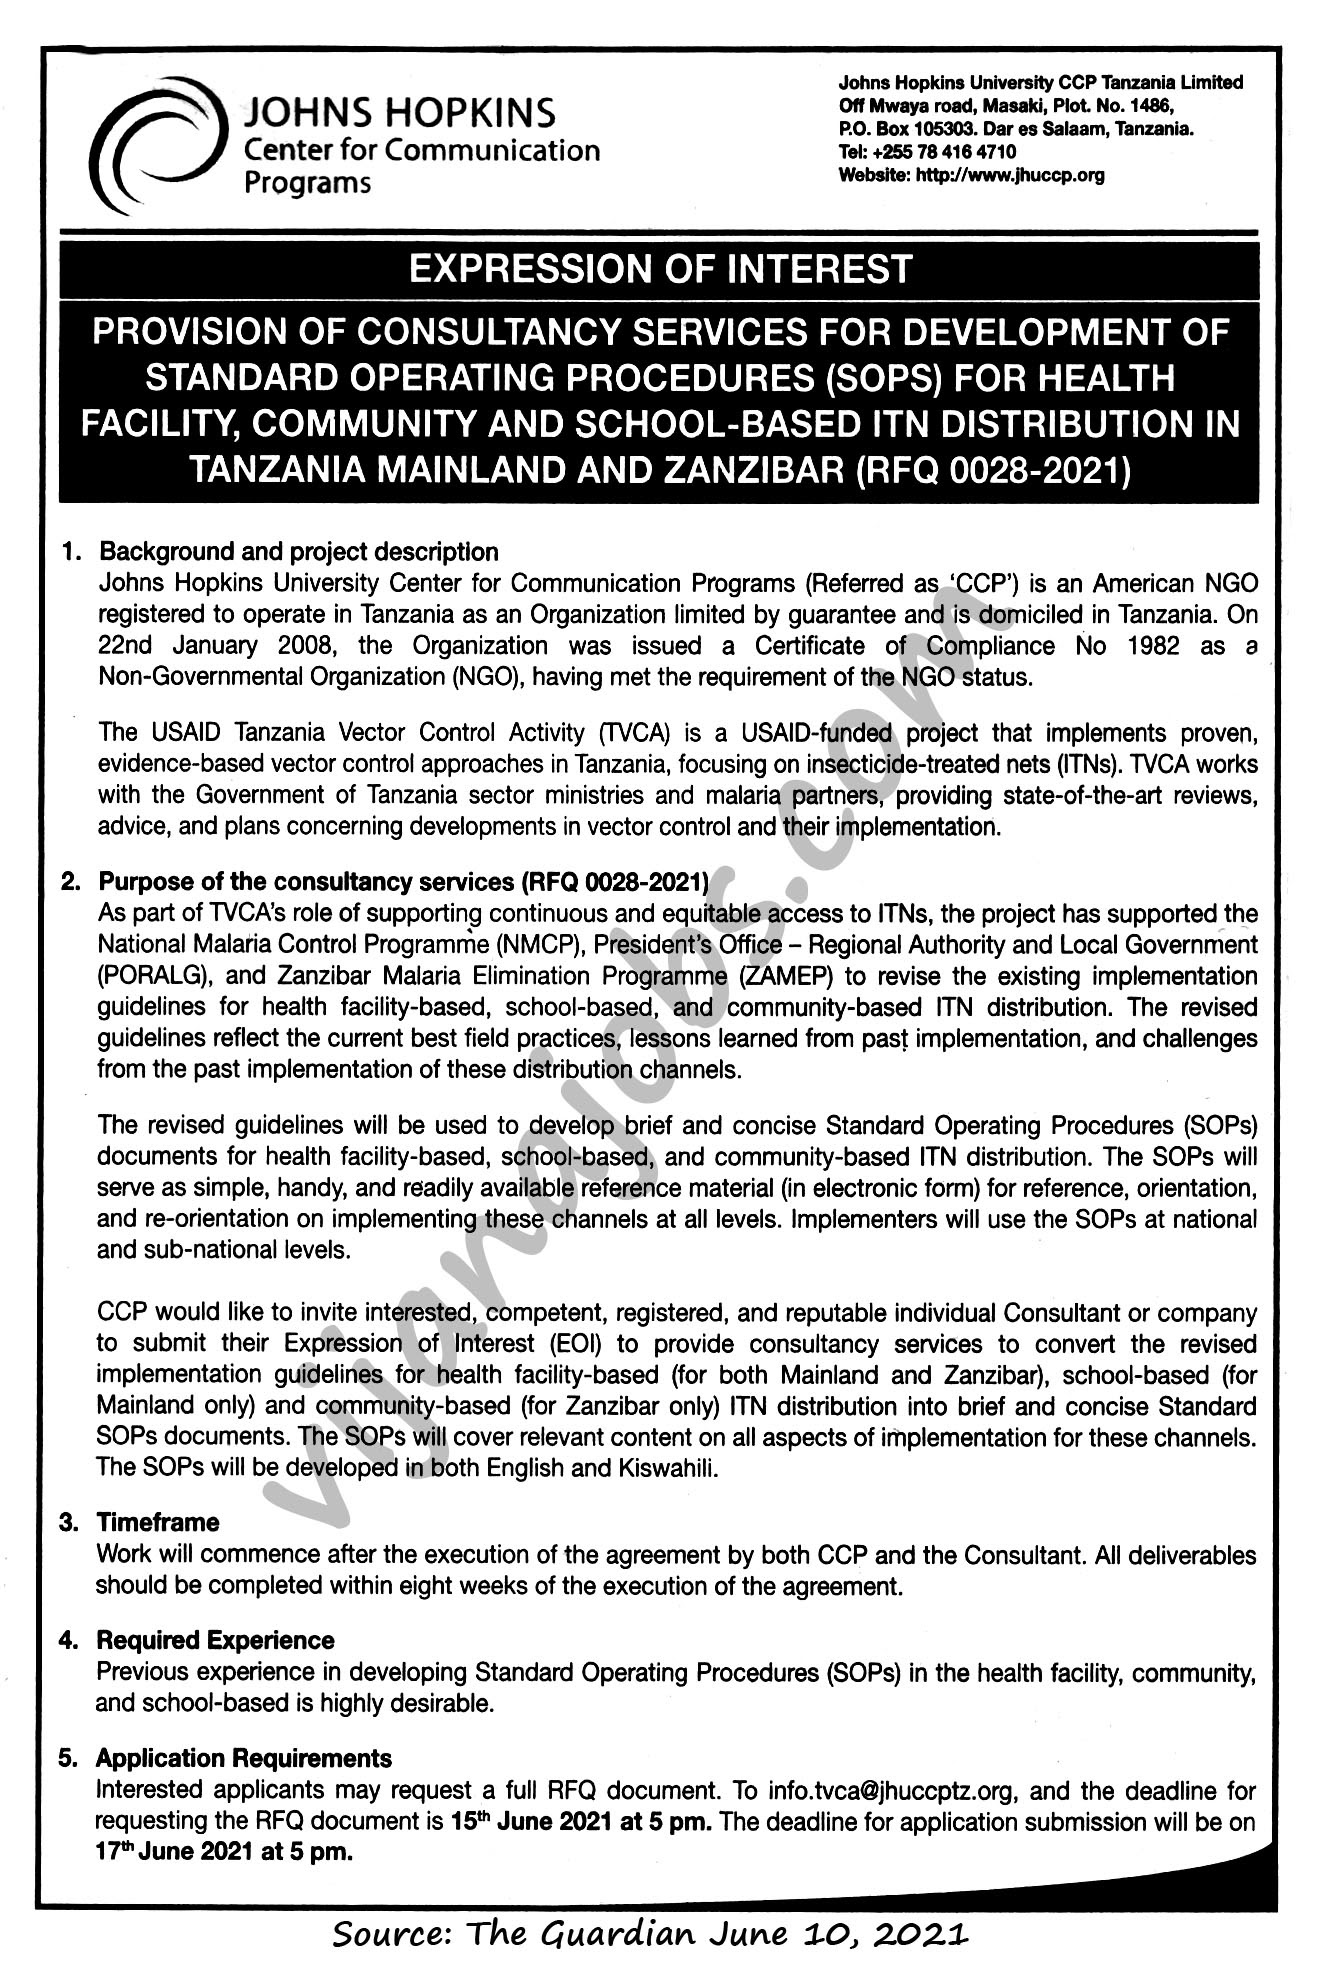 Provision of Consultancy Services for Development of Standard Operating Procedures for Health Facility, Community and School-based ITN Distribution in Tanzania Mainland and Zanzibar